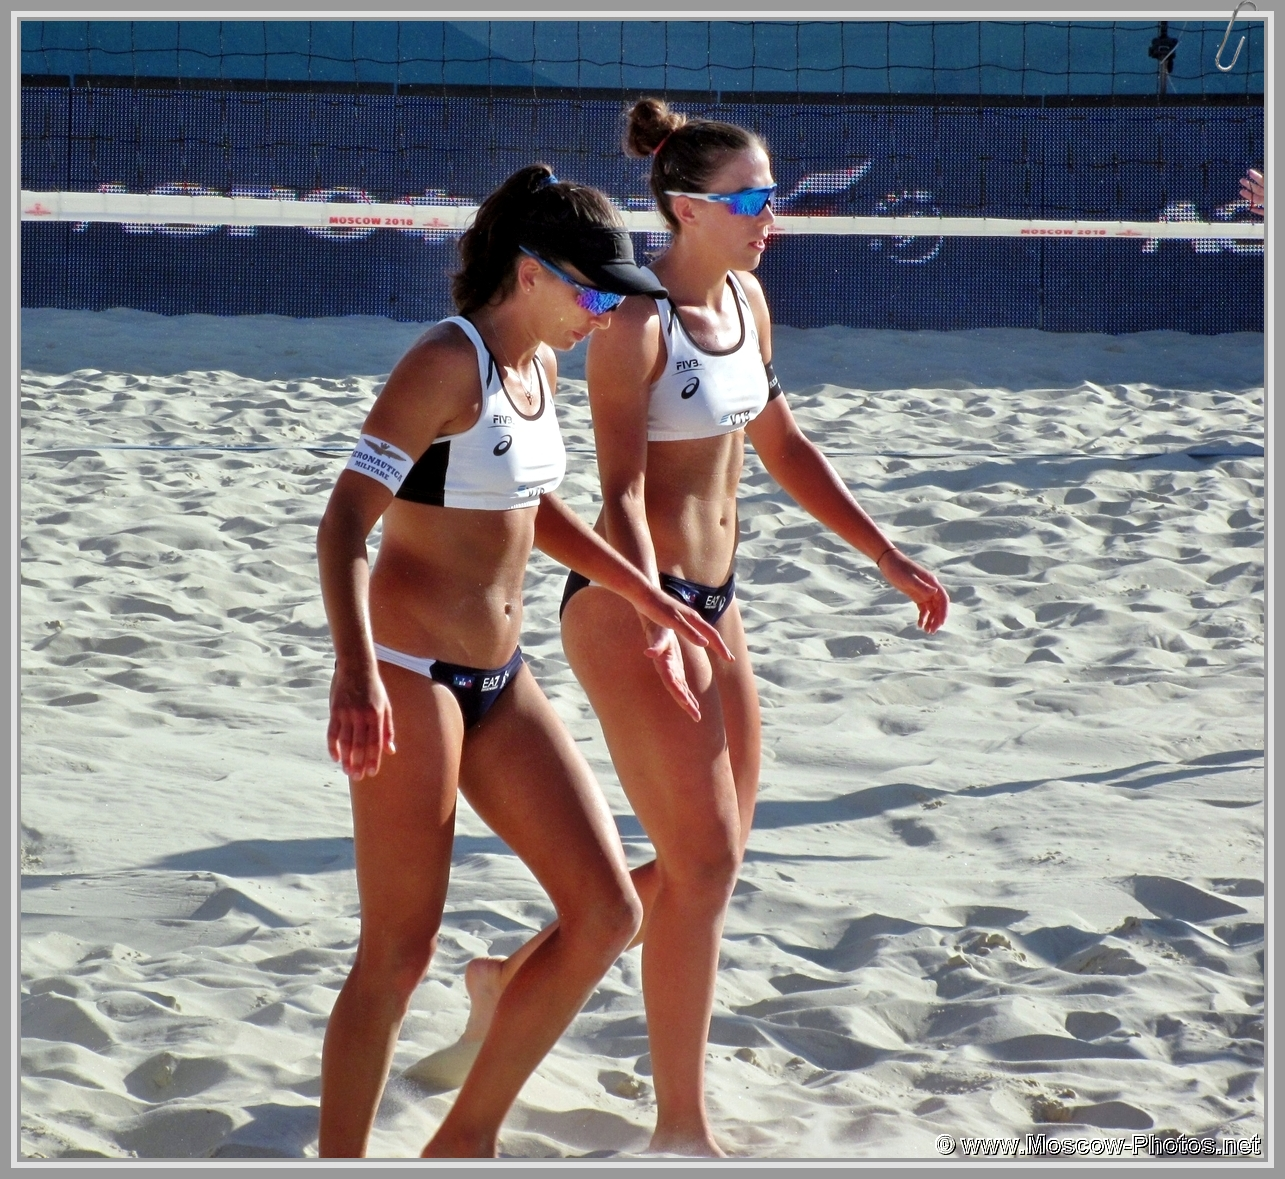 Marta Menegatti and Viktoria Orsi Toth at FIVB Beach Volleyball World Tour in Moscow 2018